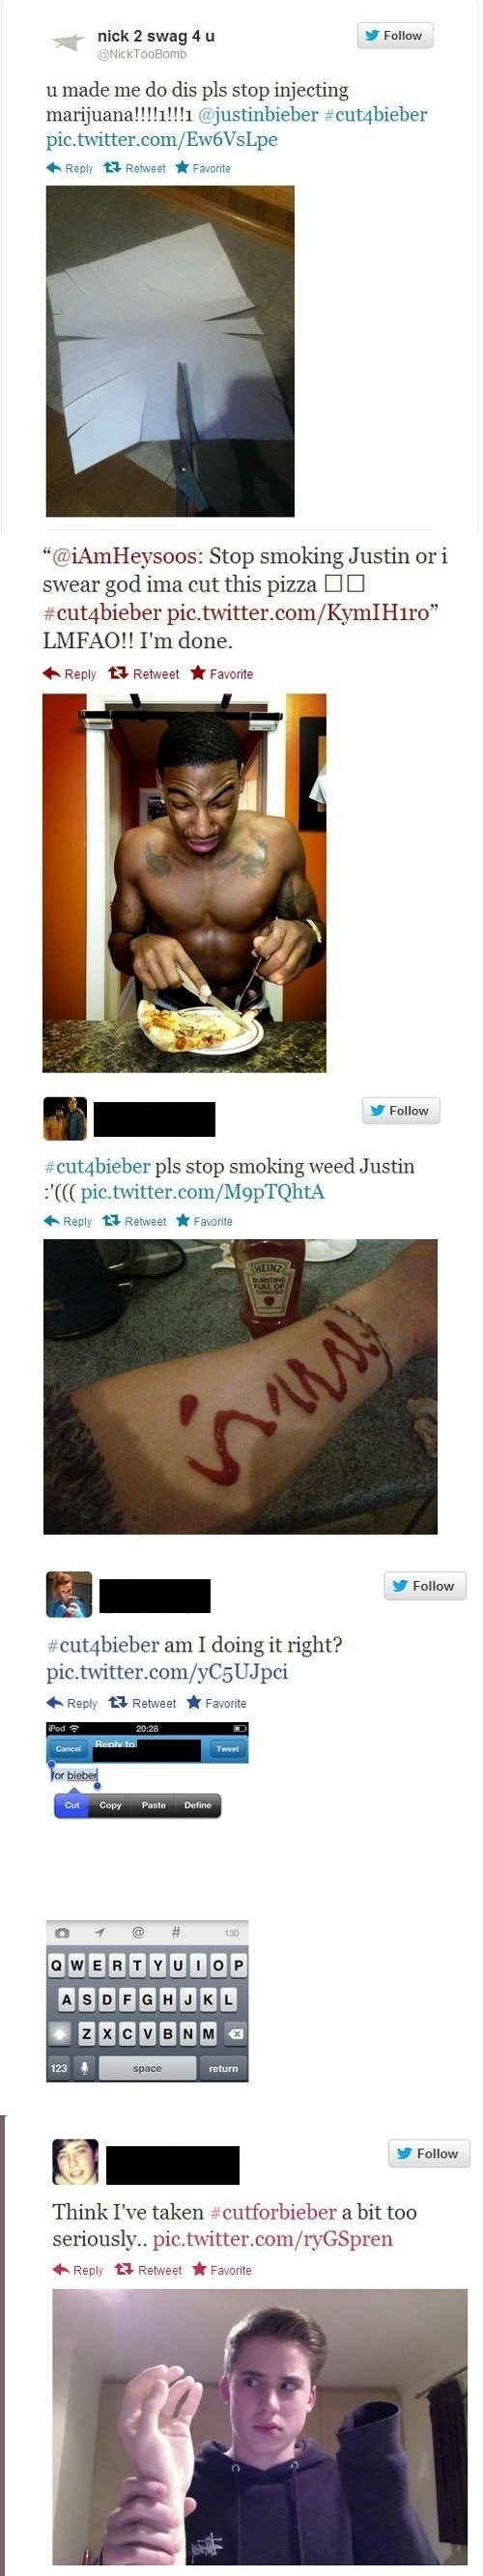 self harm twitter news cutting cutforbieber justin bieber Music FAILS - 6952479232